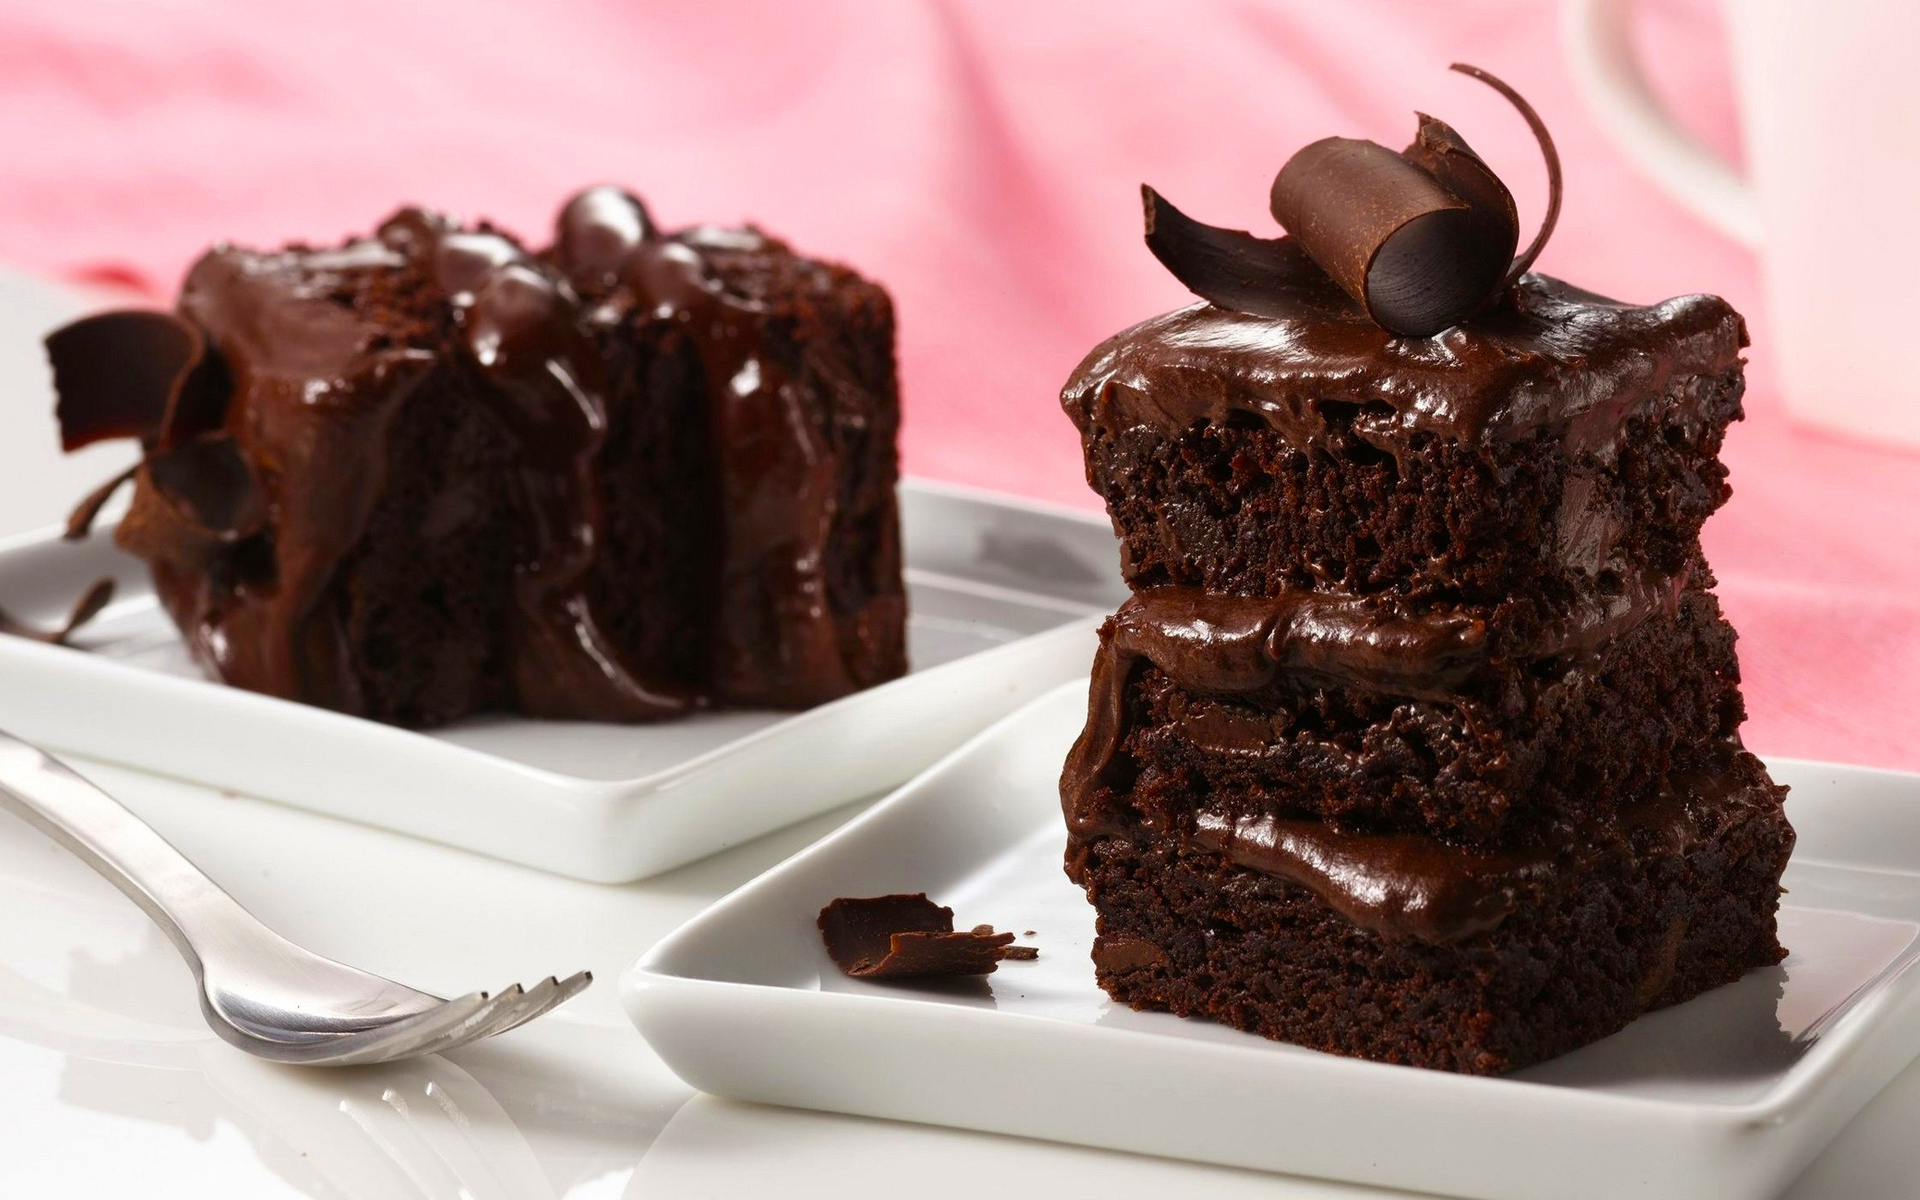 Tasty Chocolate Cake